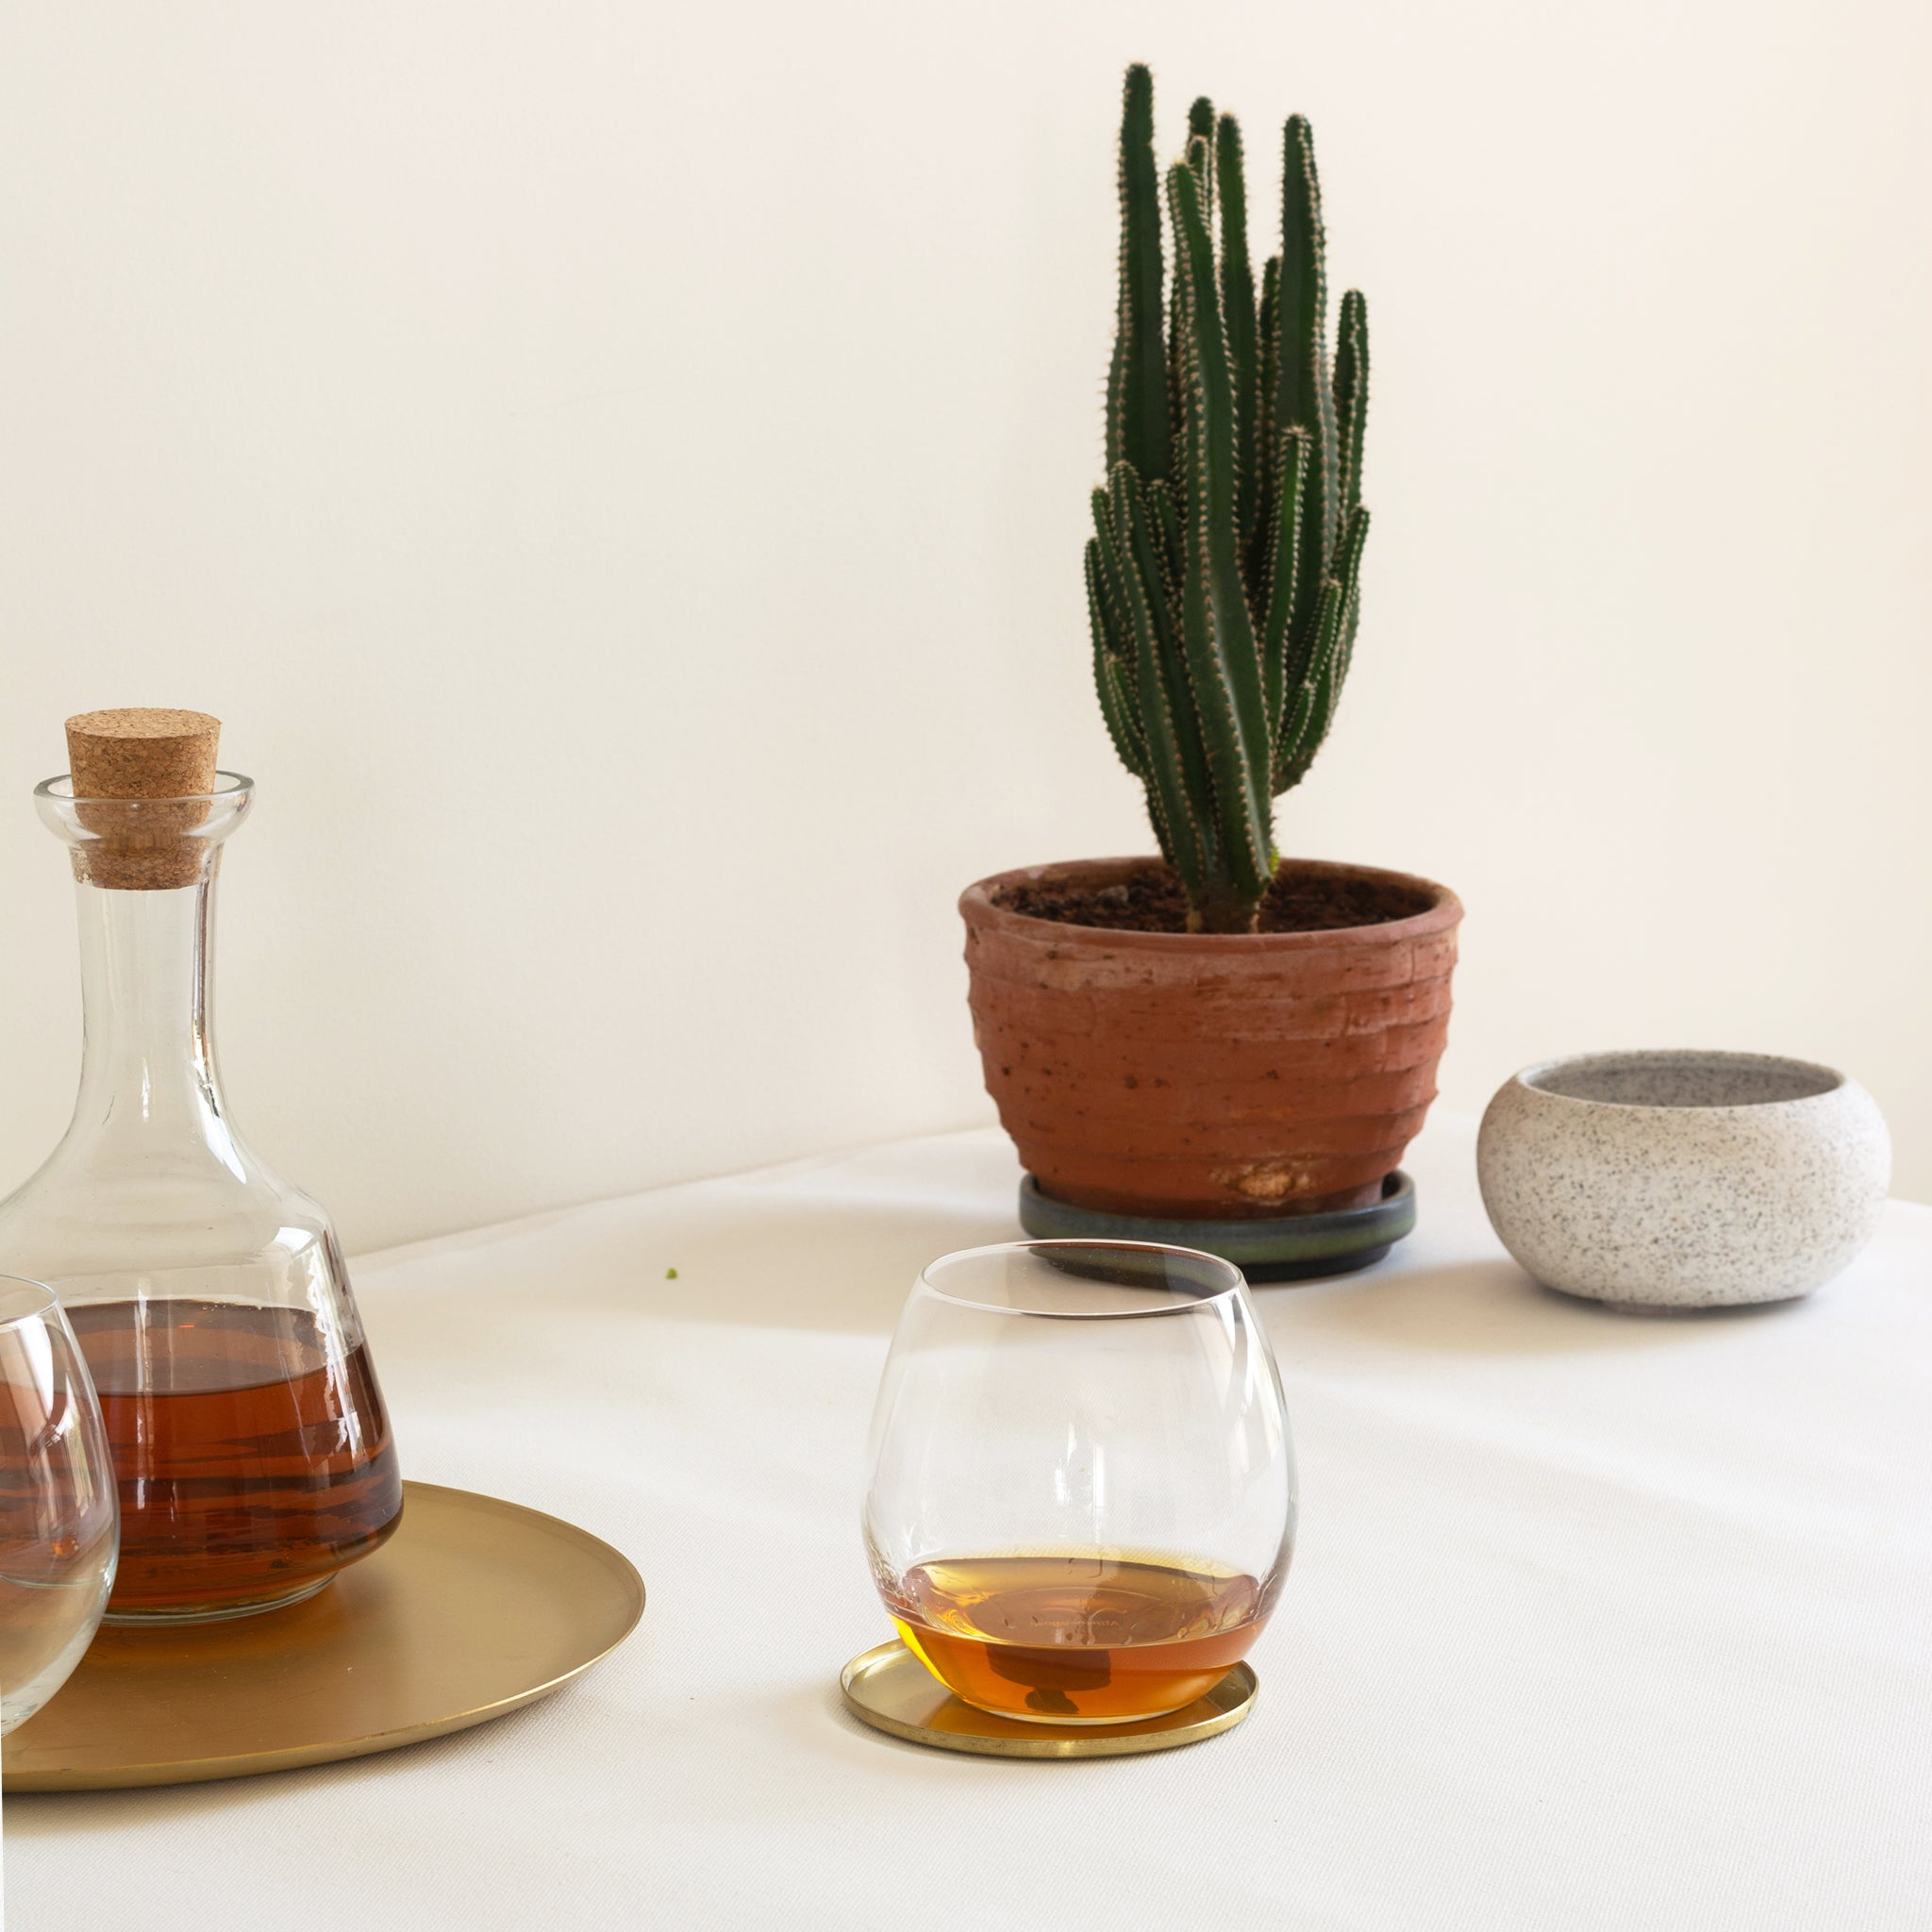 glass tumbler kept on brass coasters with plant in the background. Made by fleck india. Part of heirloom collection.